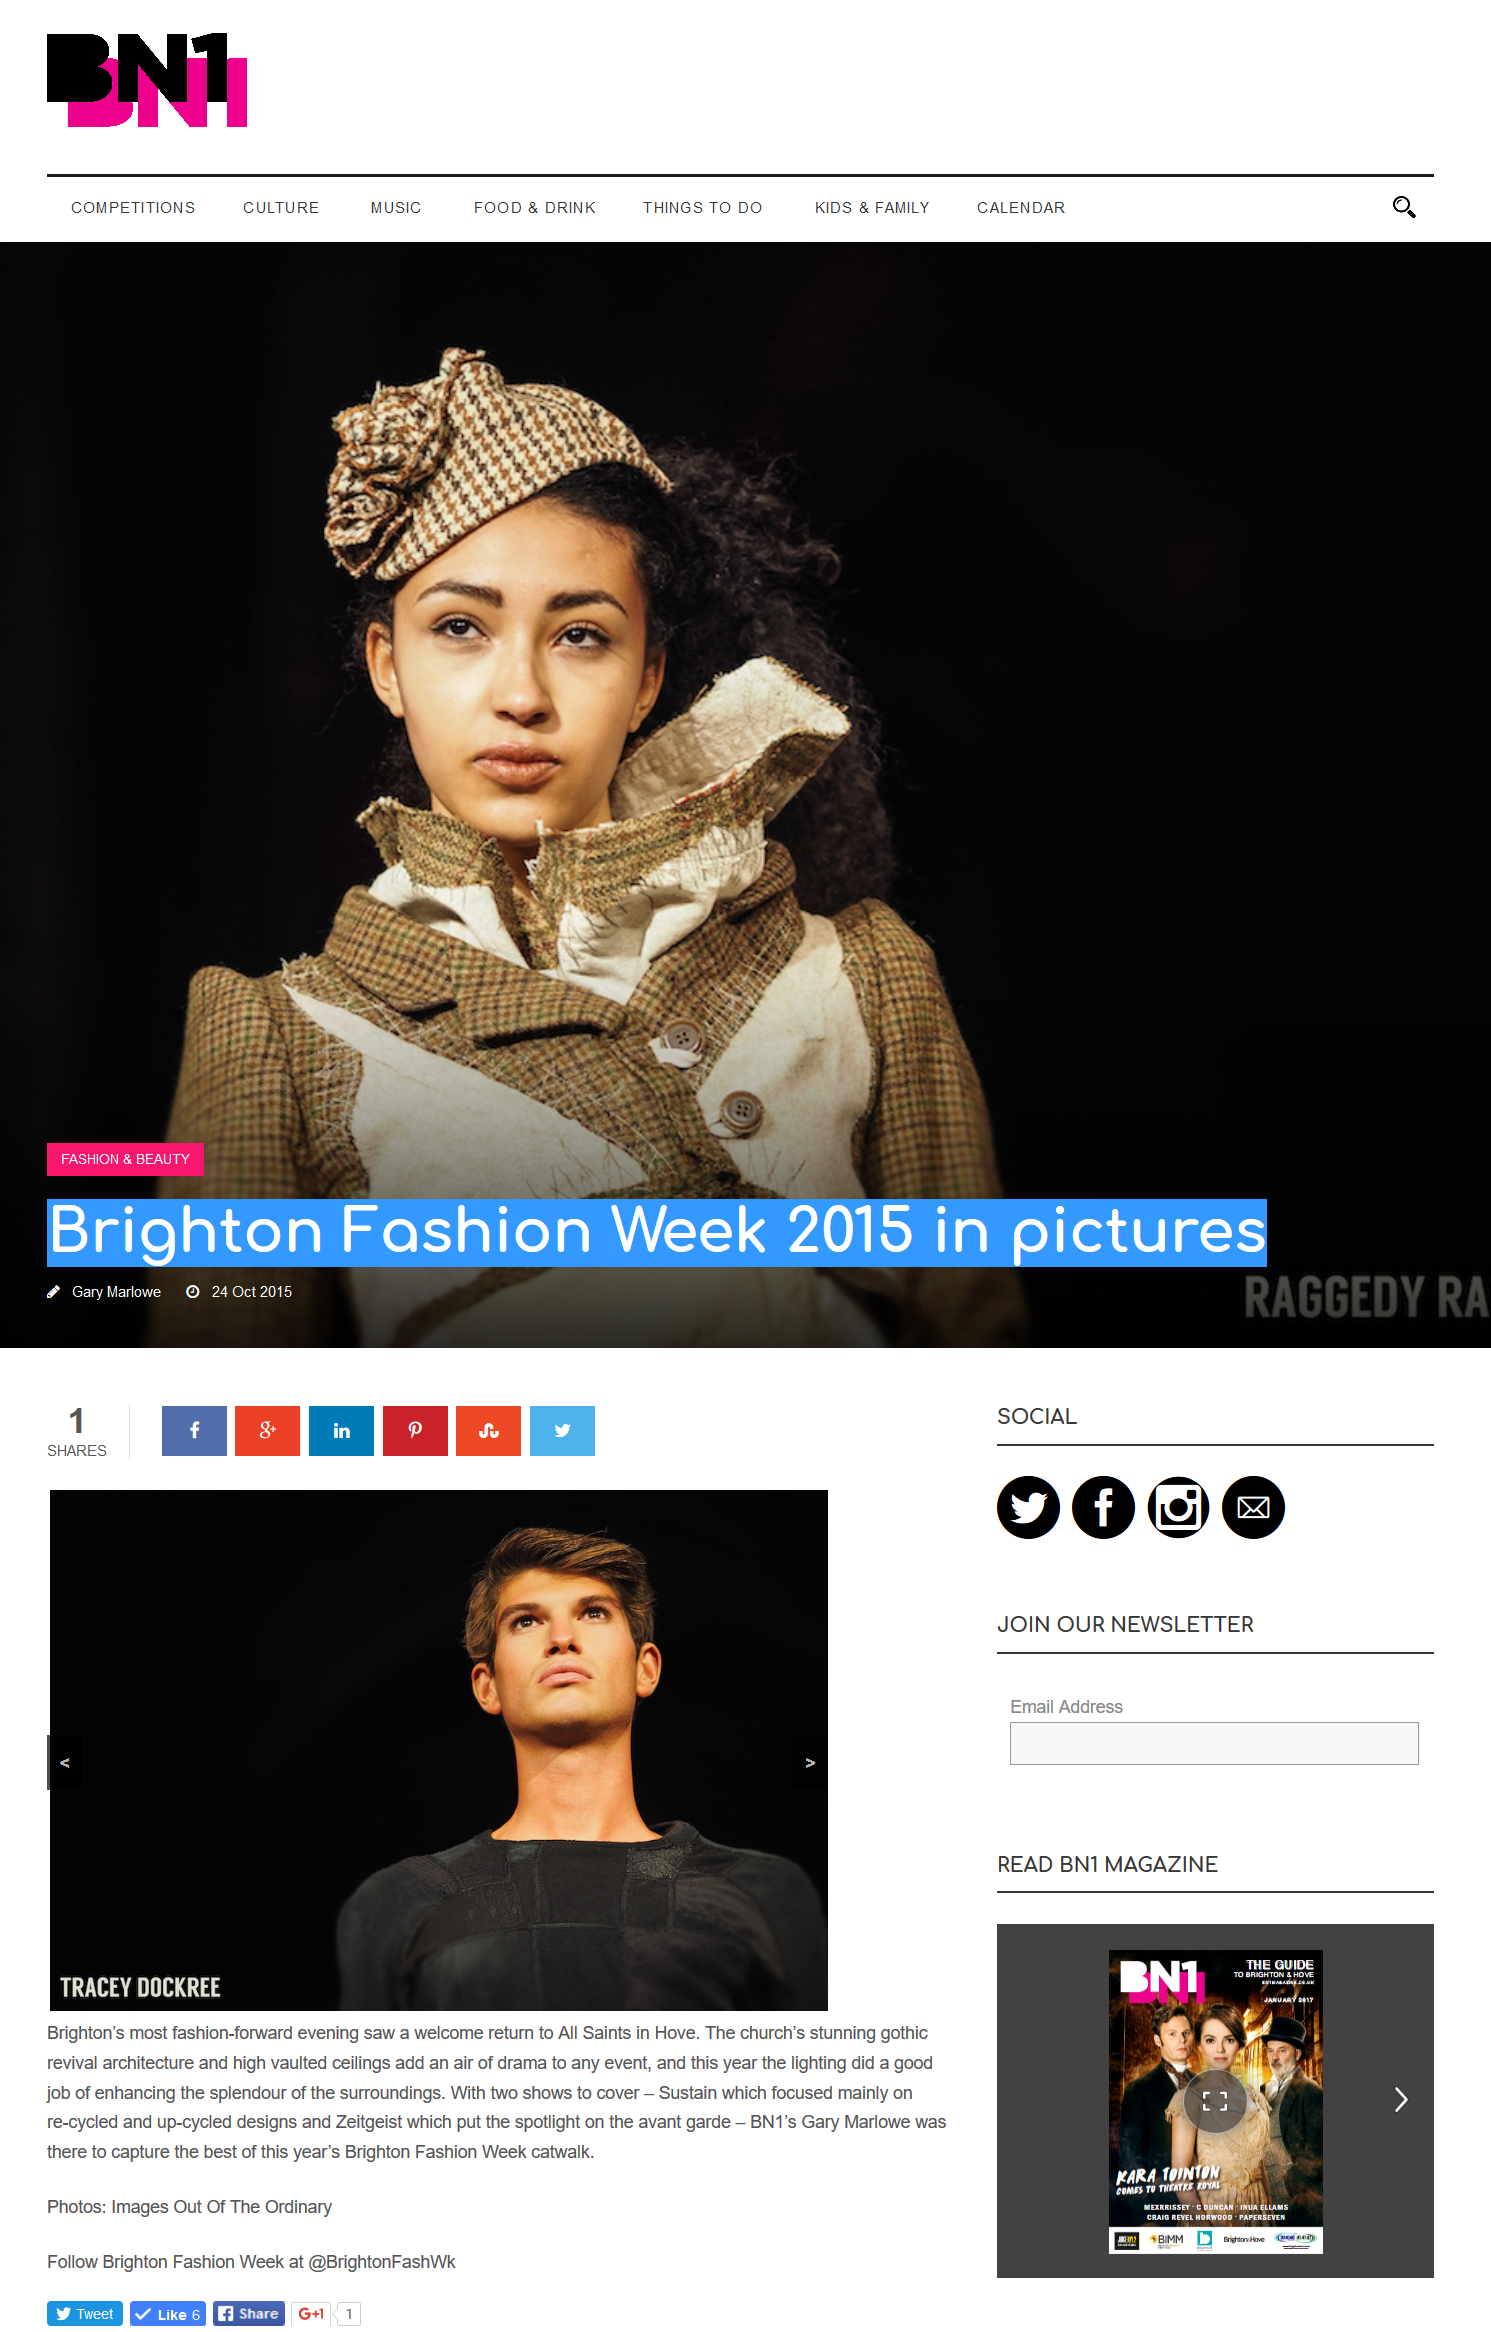 Screenshot of BN1 magazine article about Brighton Fashion Week